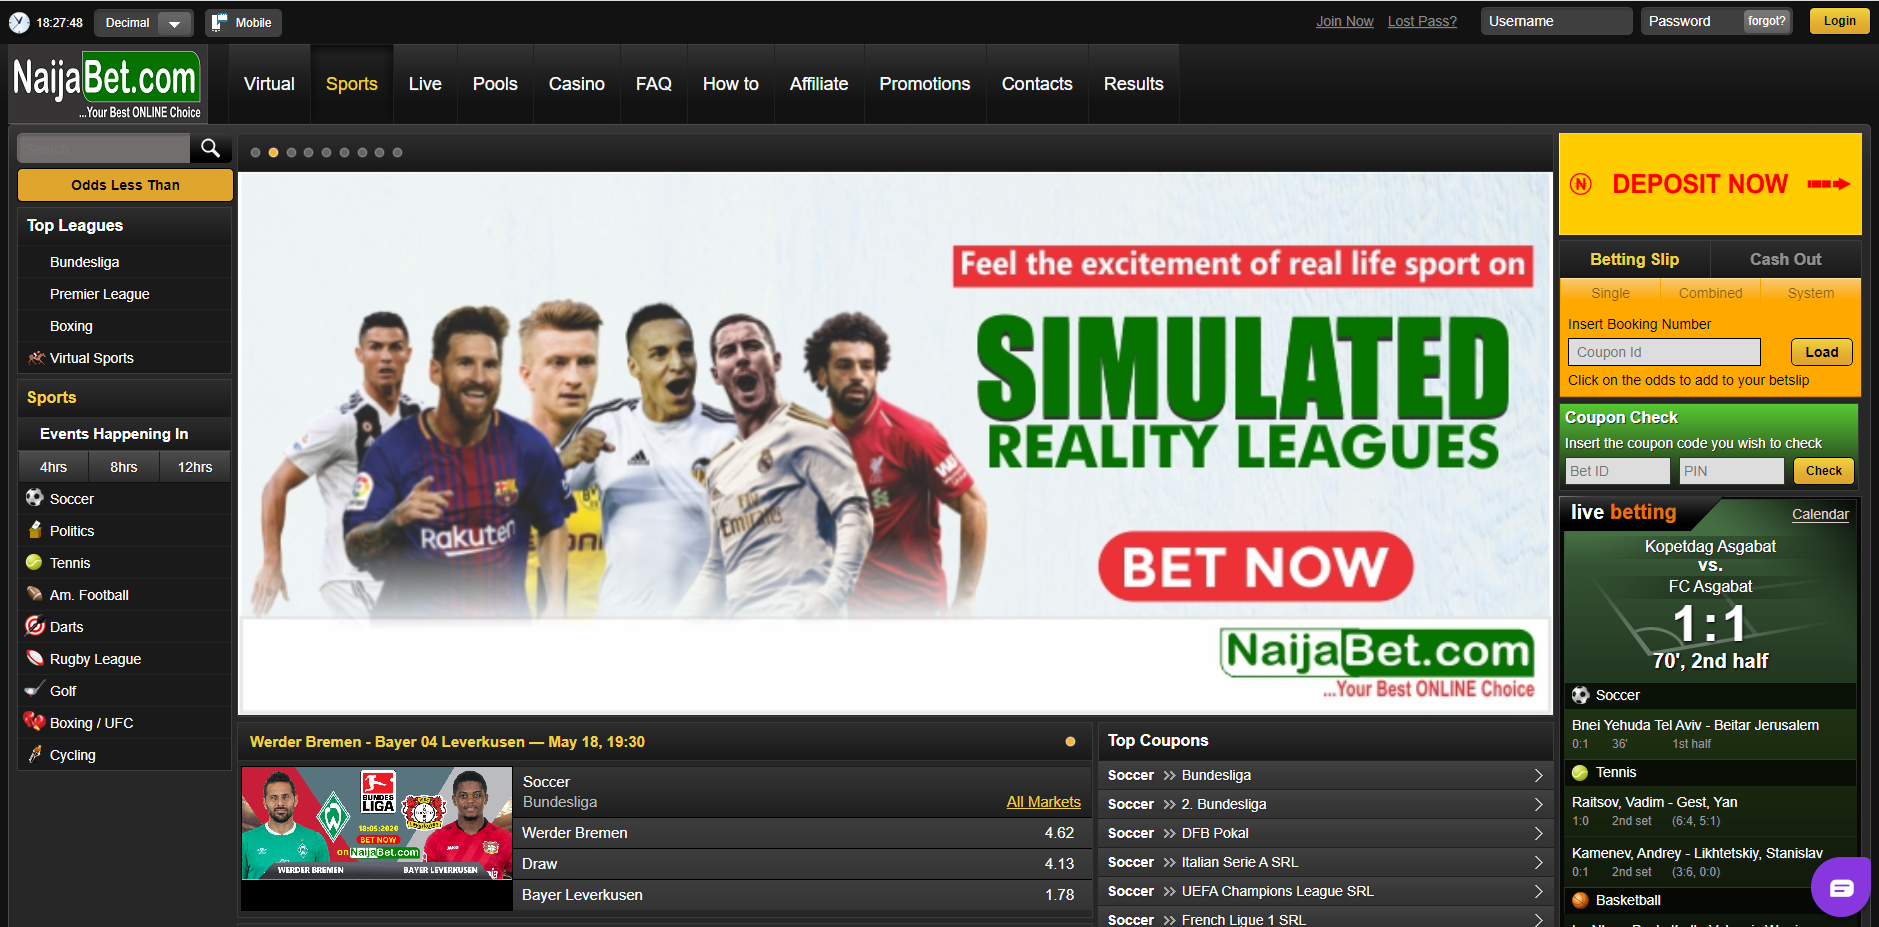 NaijaBet official site